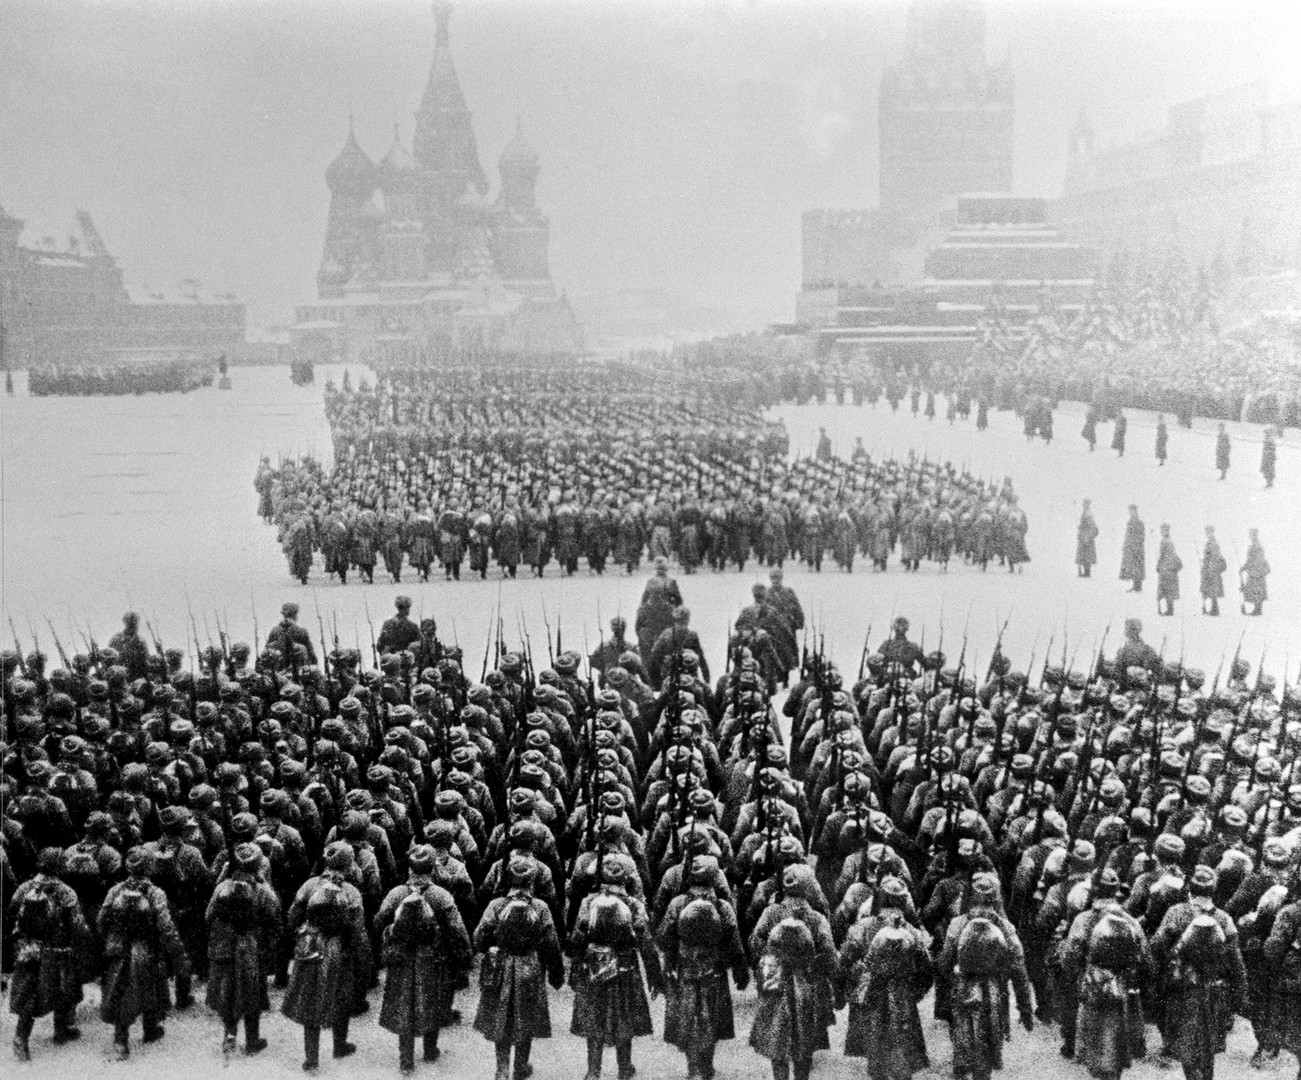 November 7, 1941. Soviet troops parade past the Kremlin and march on to the front line.